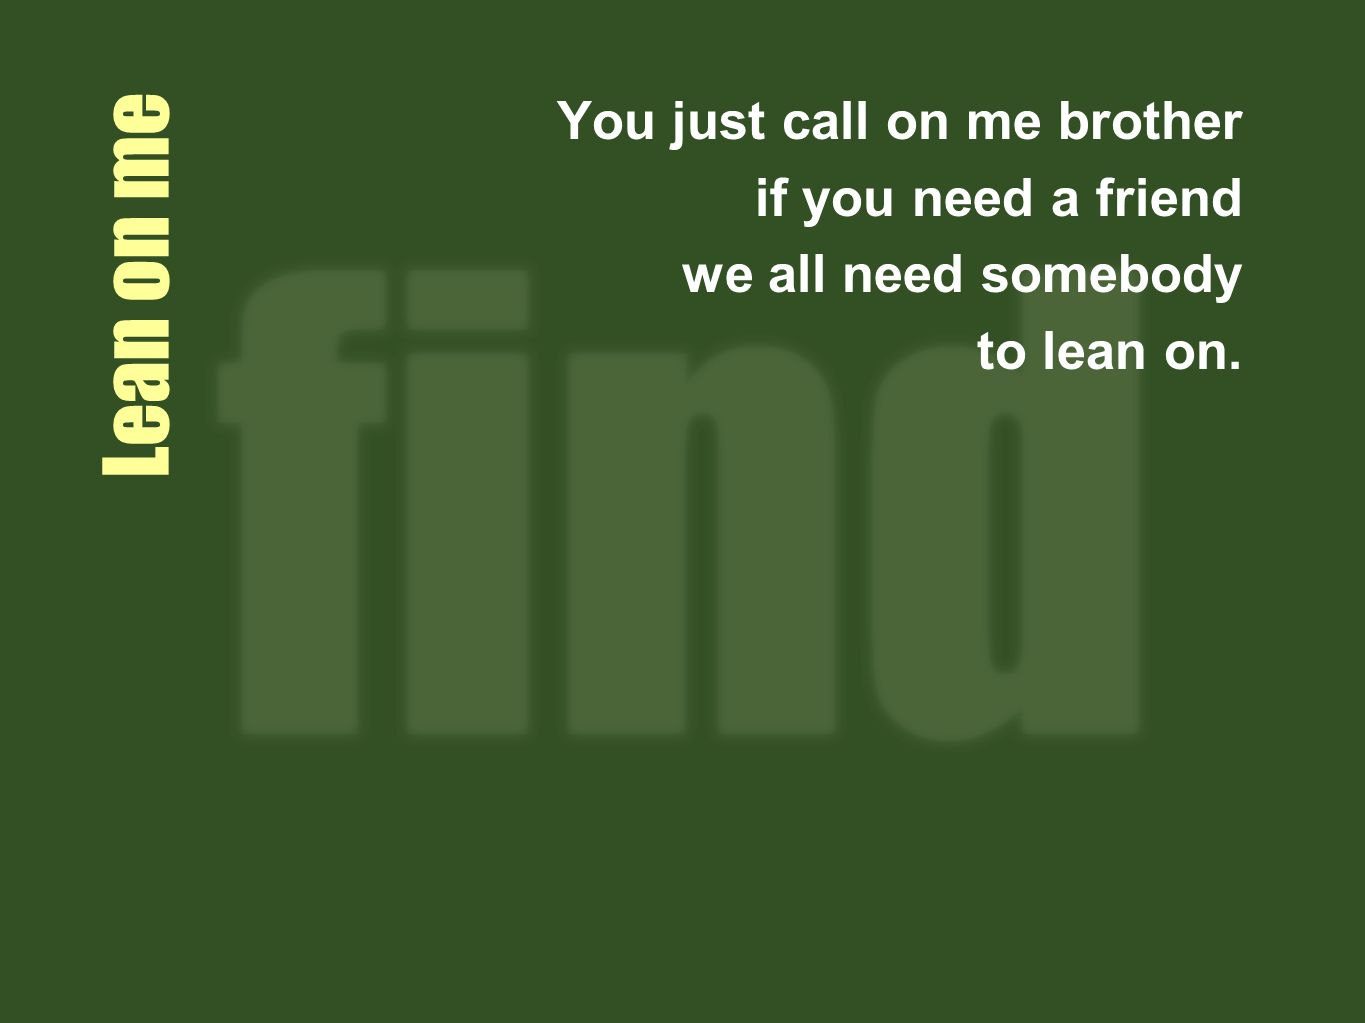 Lean on me You just call on me brother if you need a friend